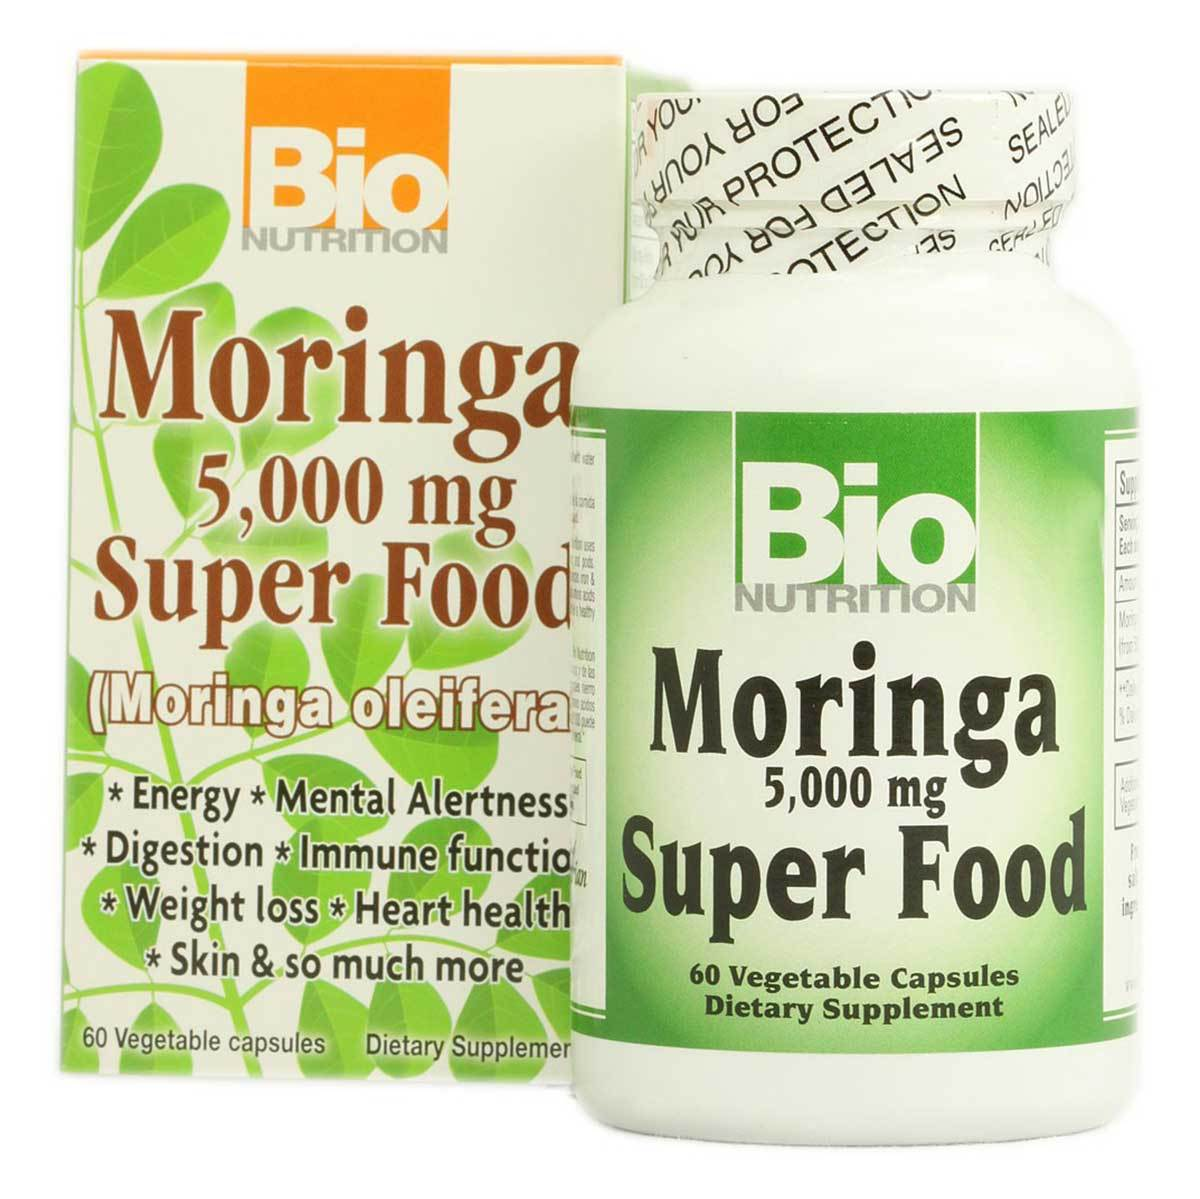 Bio Nutrition Moringa 5000mg 60 Vege Caps Antioxidants / CoQ-10 Bio Nutrition  (1058766389291)